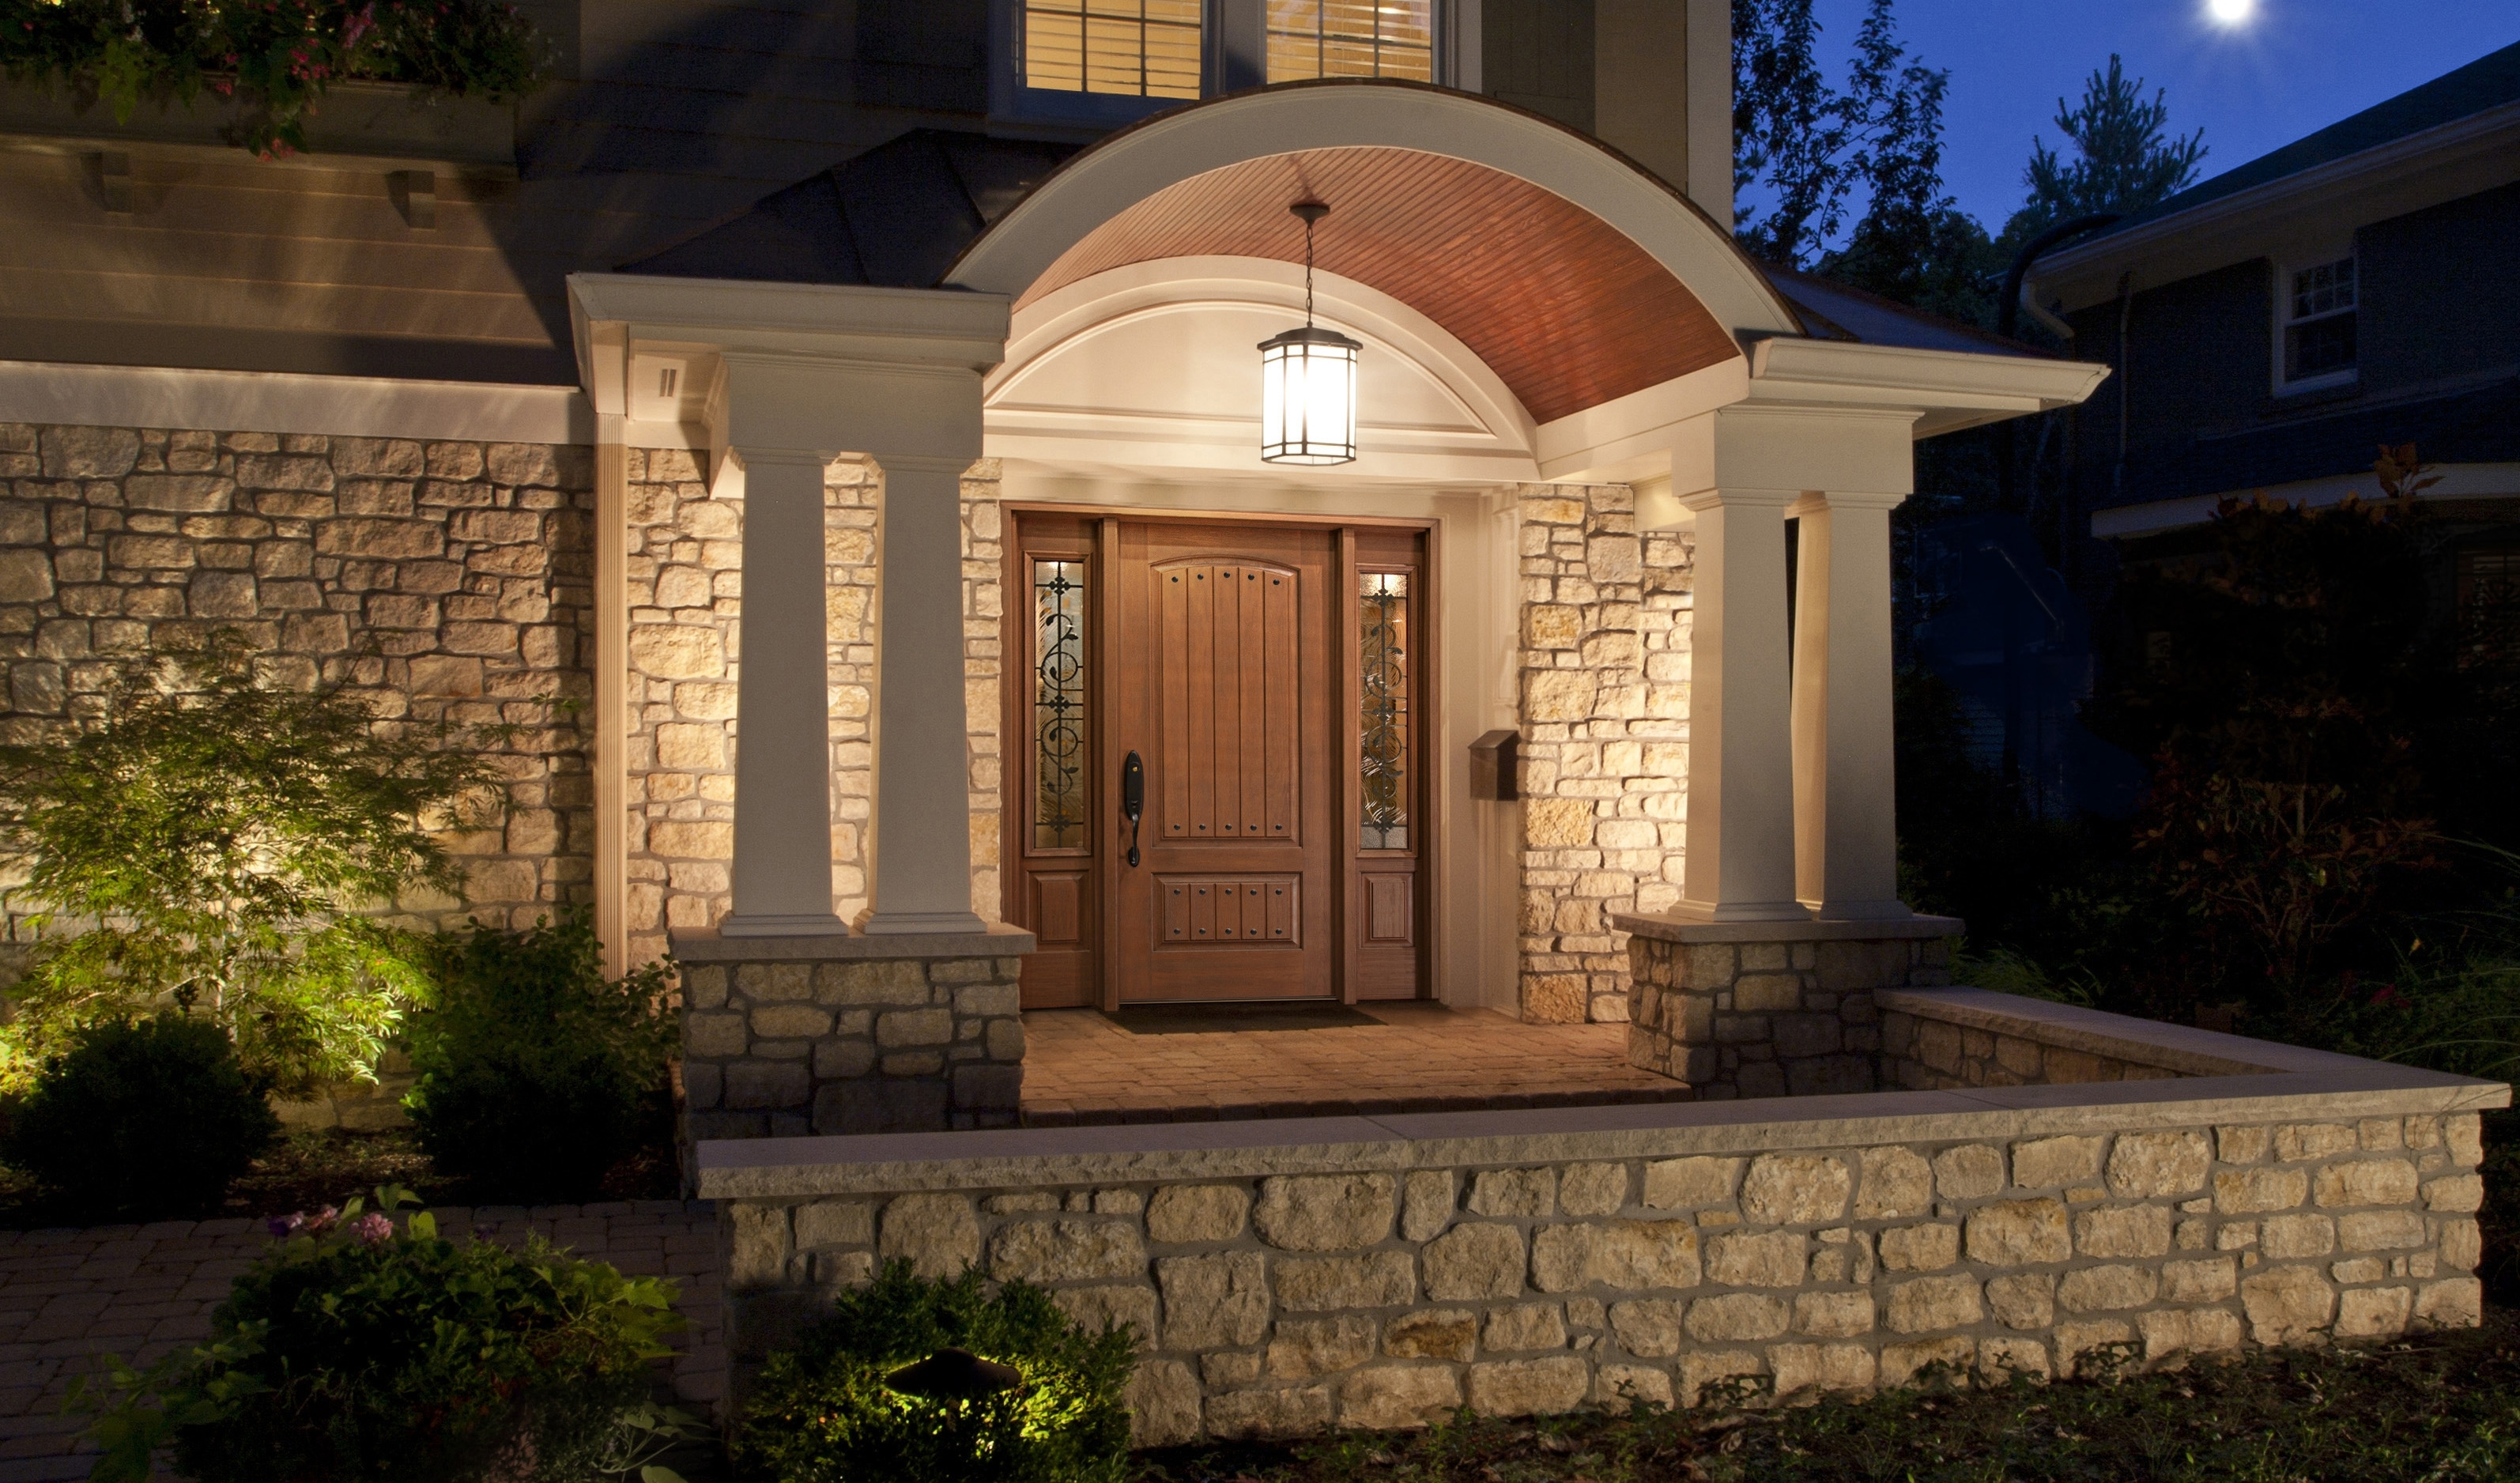 Inspiration about Rustic Modern House Design With Stone Wall Exterior And Wall Mounted Intended For Front Door Outdoor Hanging Lights (#4 of 15)